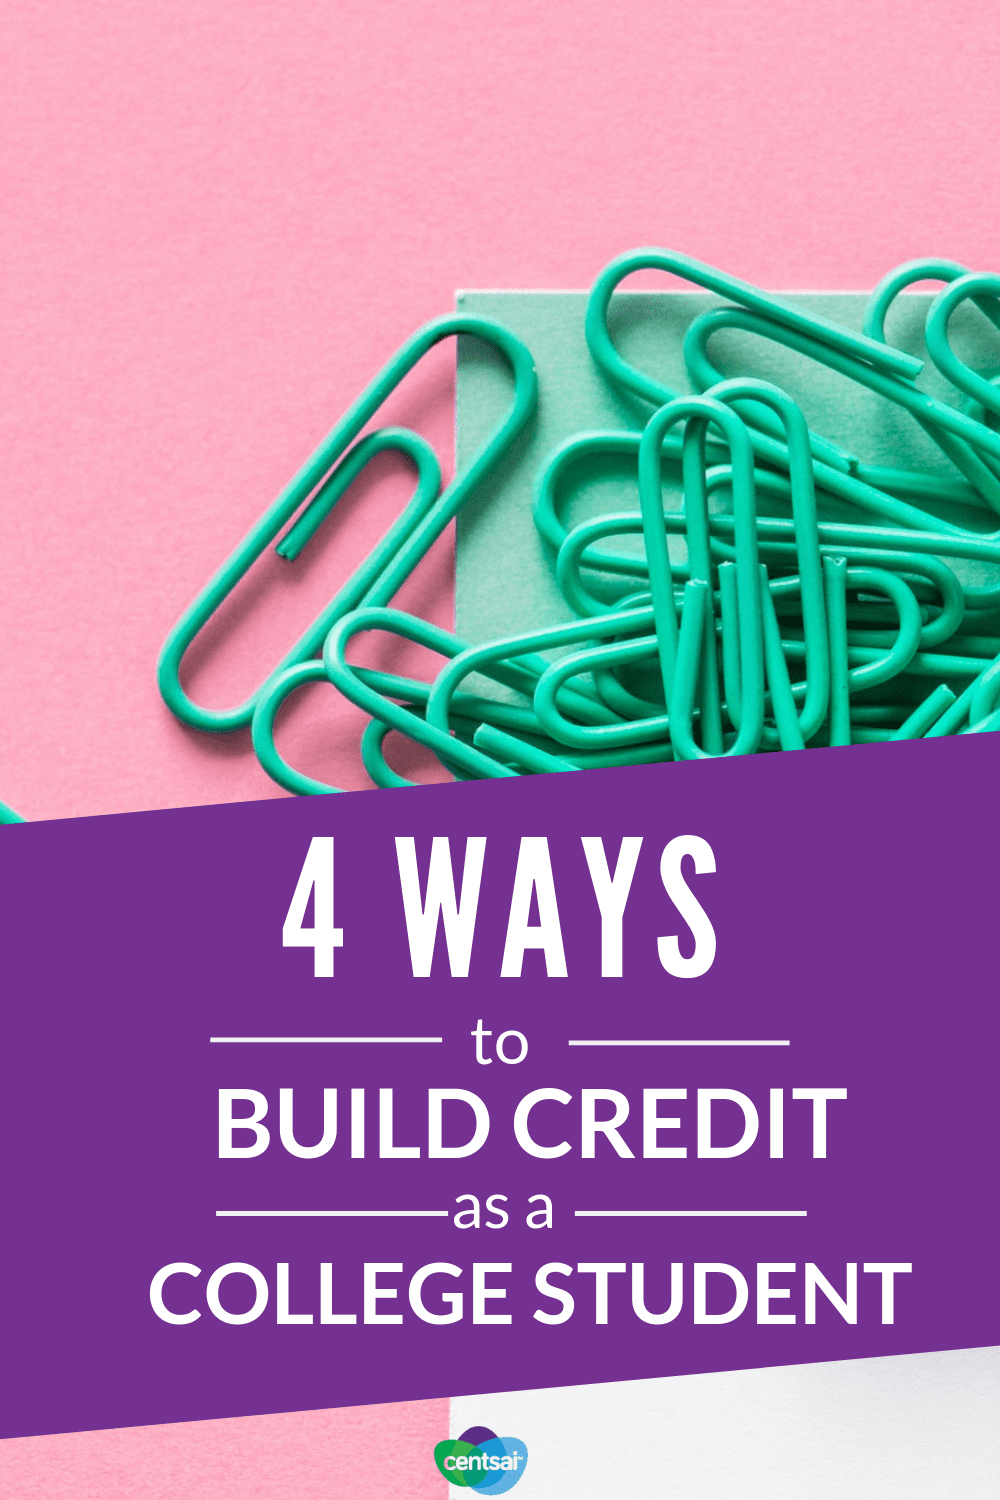 4 Ways to #BuildCredit as a College Student. Getting an apartment or car loan often requires a #creditscore. Check out these tips on how to improve and build credit as a college student. #raise #hacks